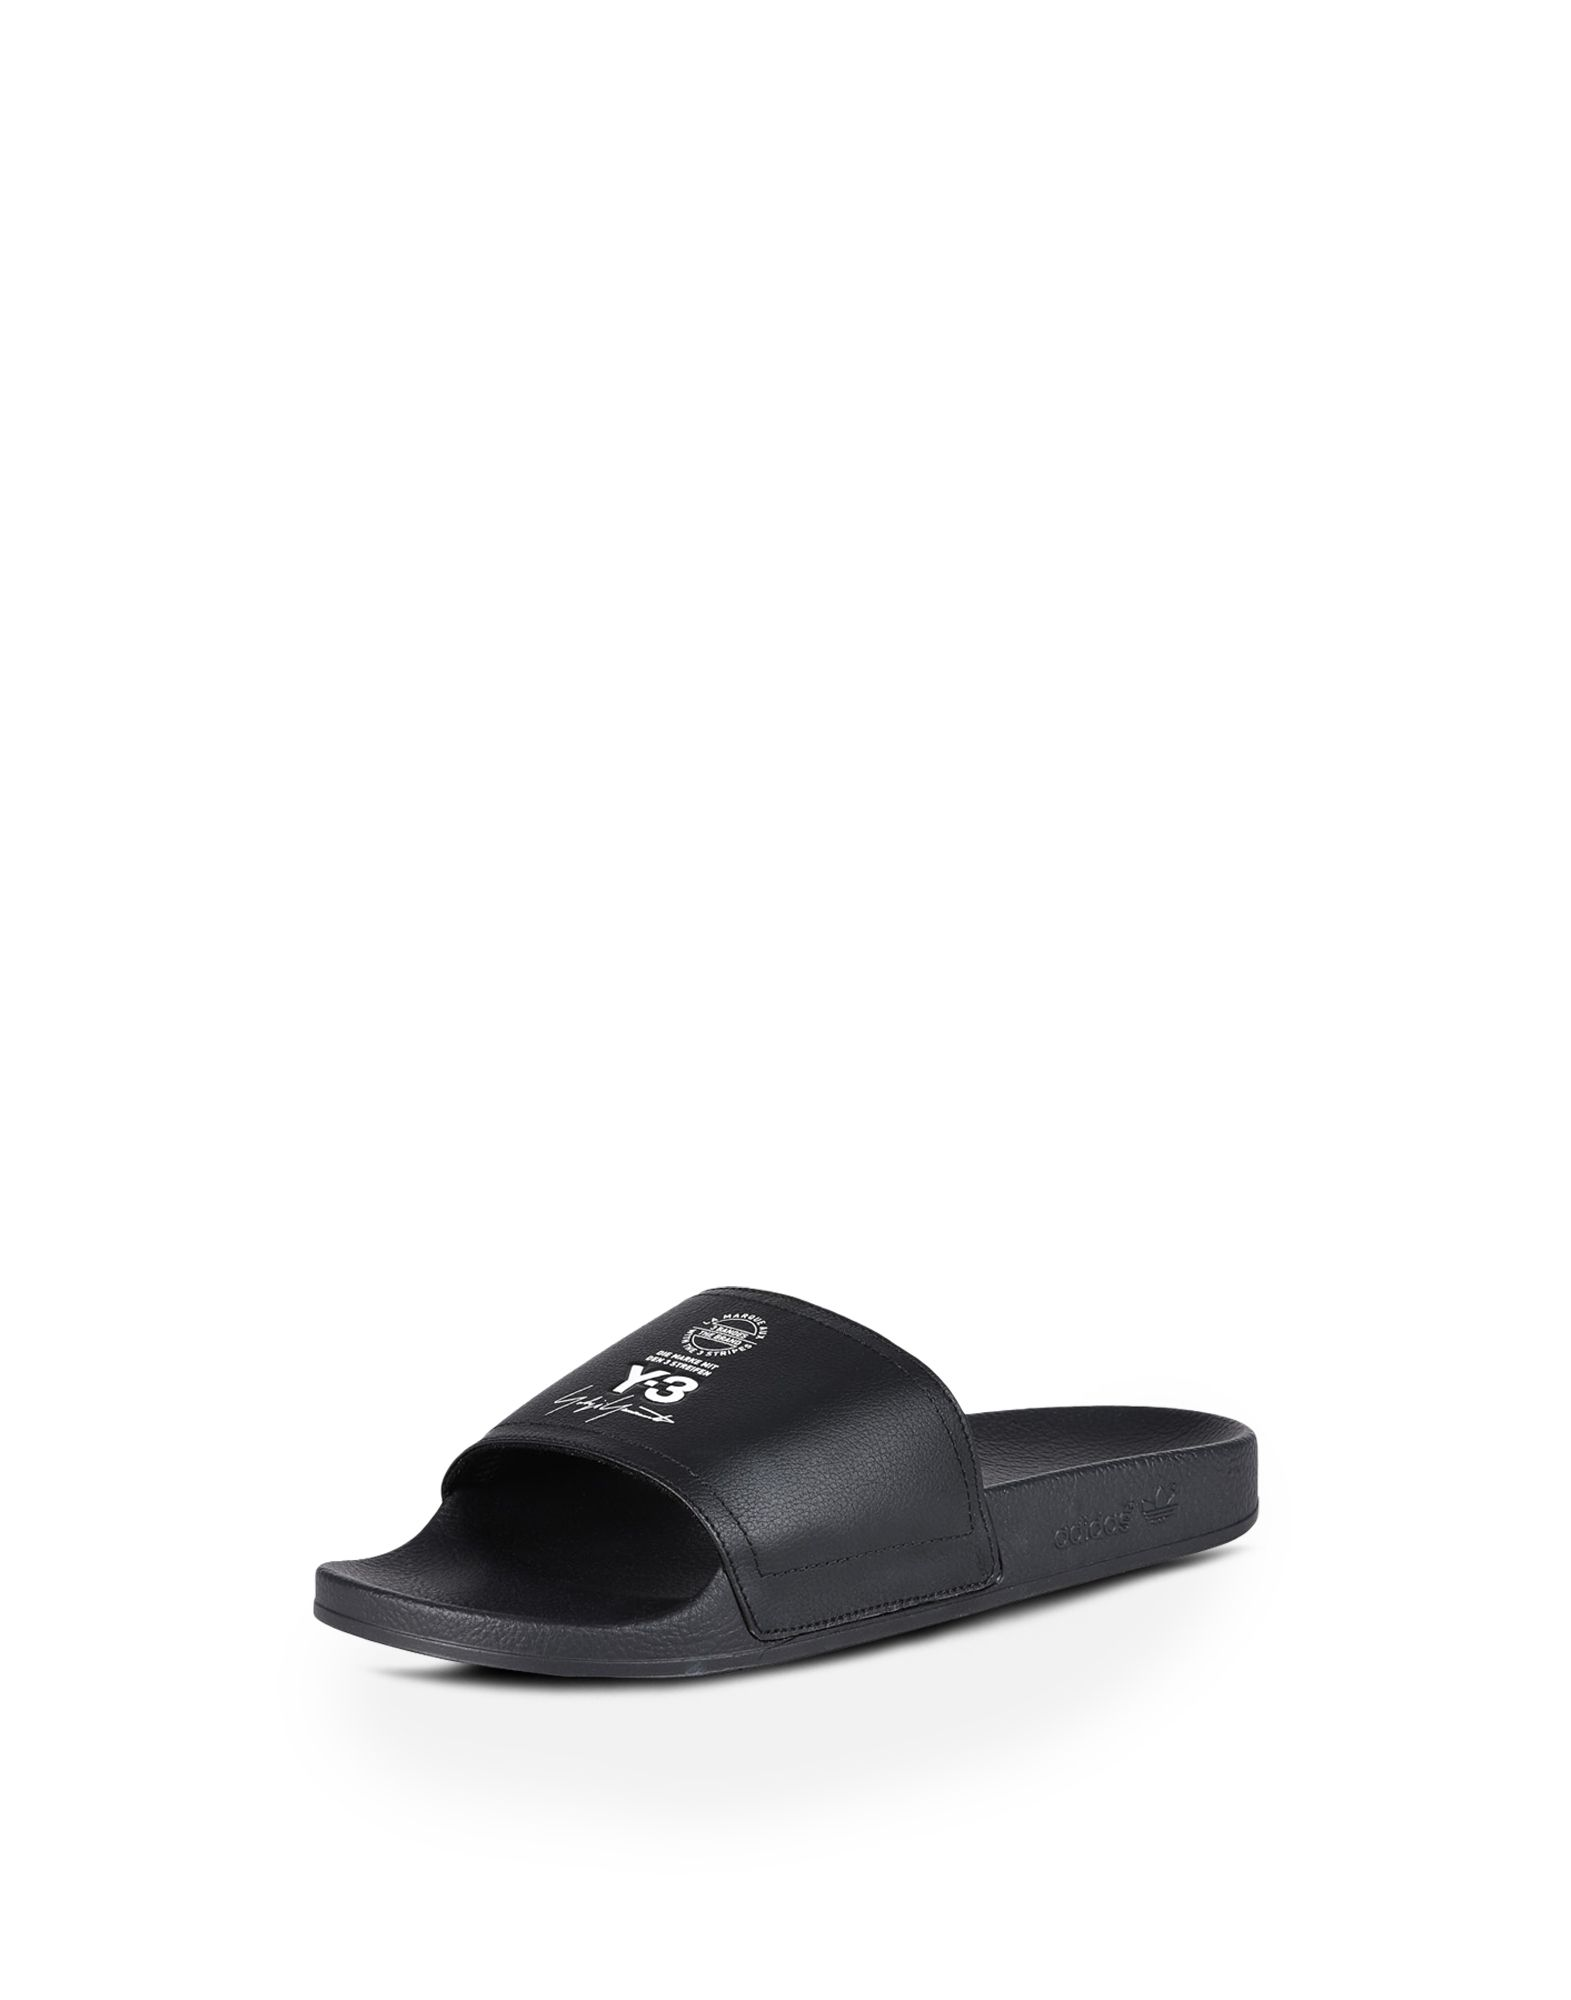 Latest Collections Online Y-3 Sandals ADILETTE leather Shopping Online Sale Online Free Shipping Looking For Free Shipping Sale Online 4S3ekn